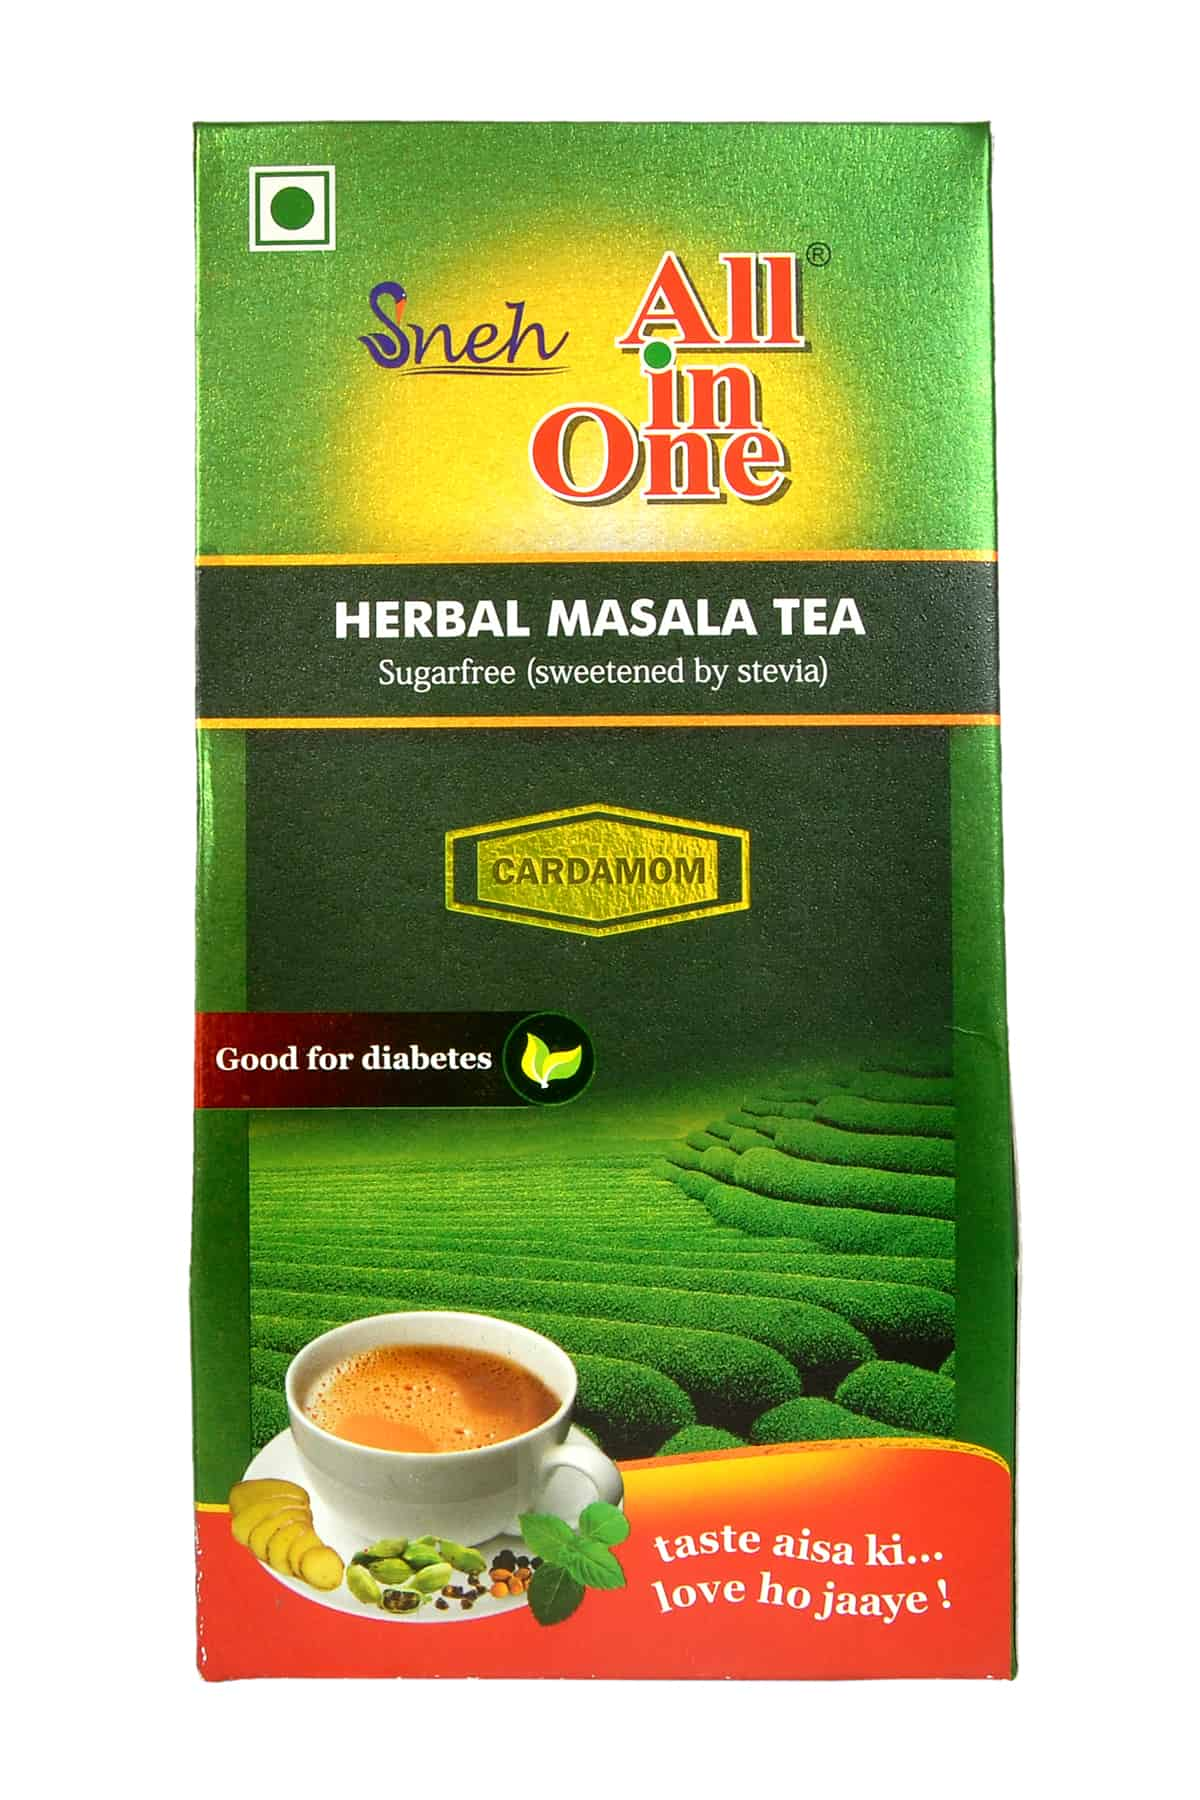 SNEH- Herbal Masala Tea (Sugarless- sweetened with stevia)- Pack of 8